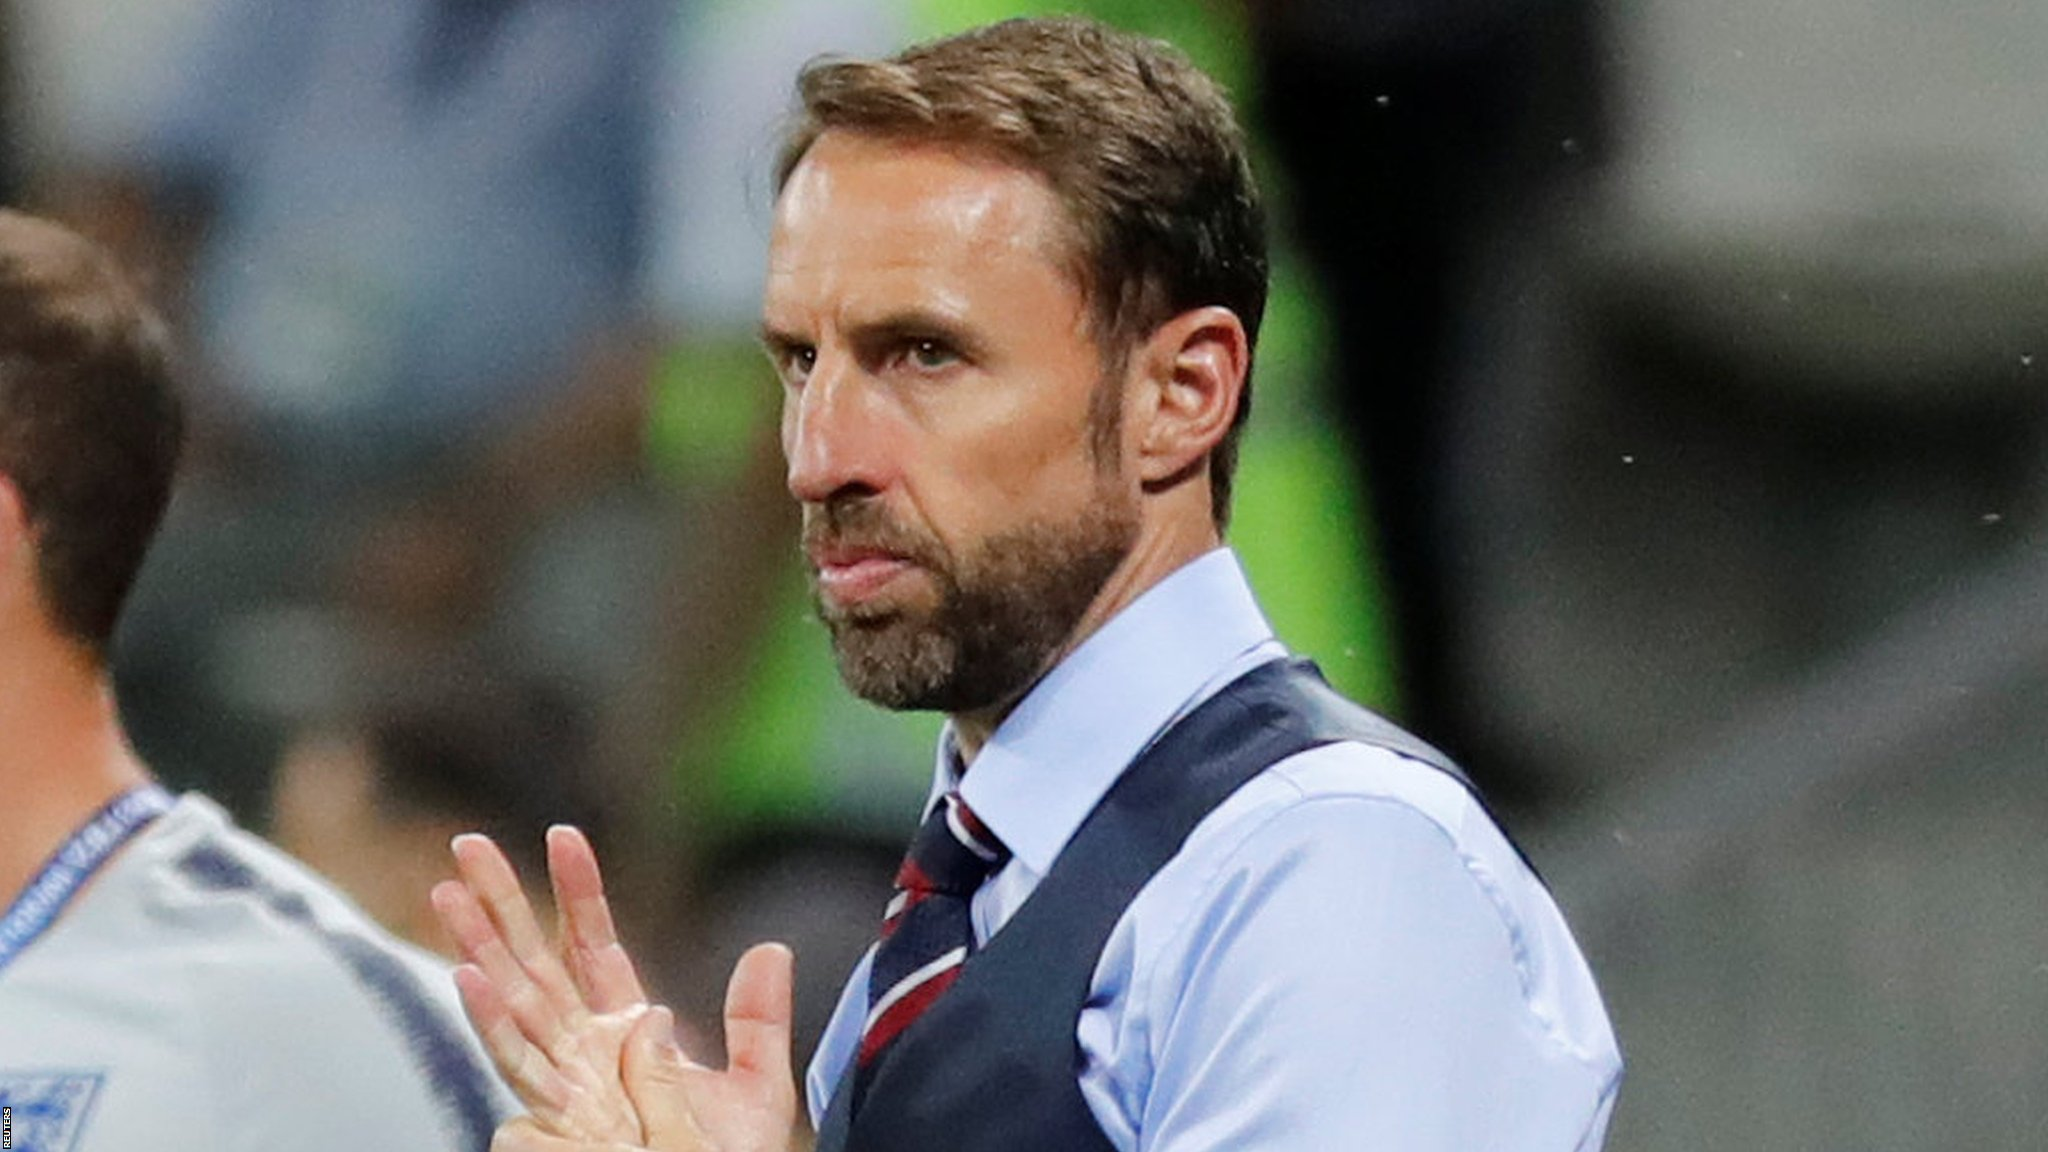 'Punching the air is not an option' - England boss Southgate dislocates shoulder while running